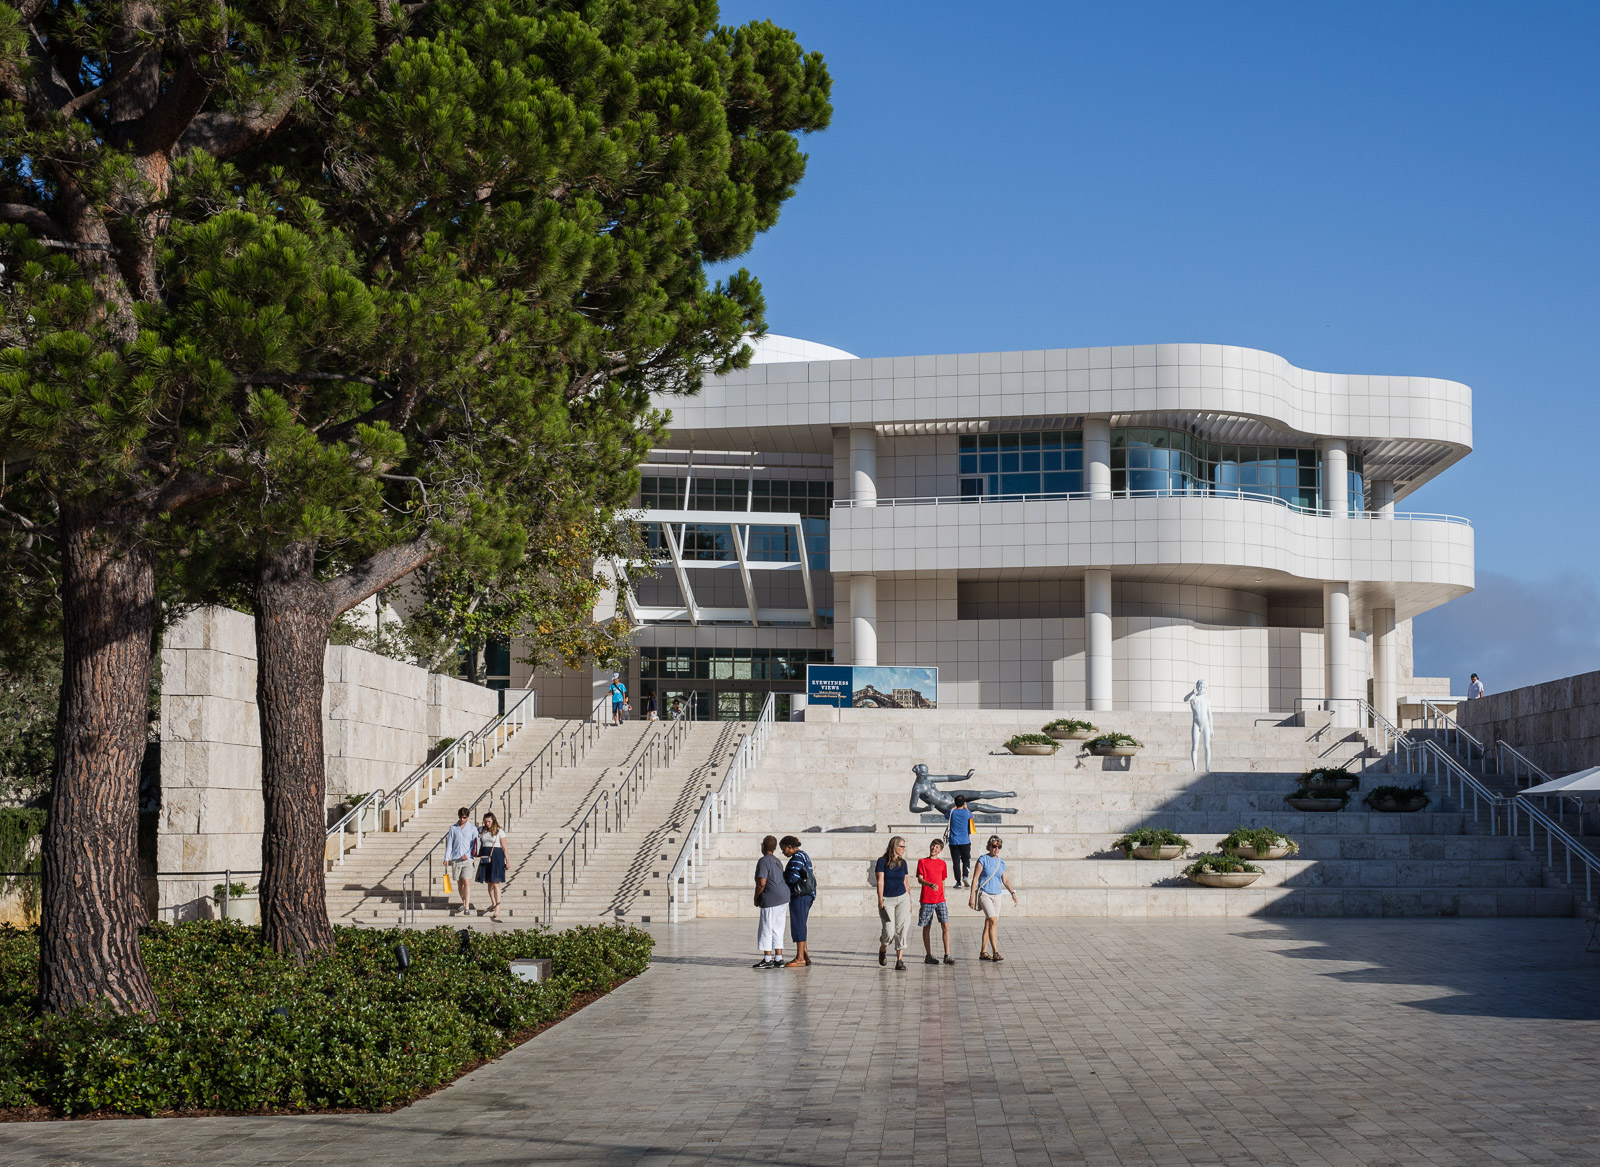 People visiting the Getty Center museum designed by architect Richard Meier in 1997